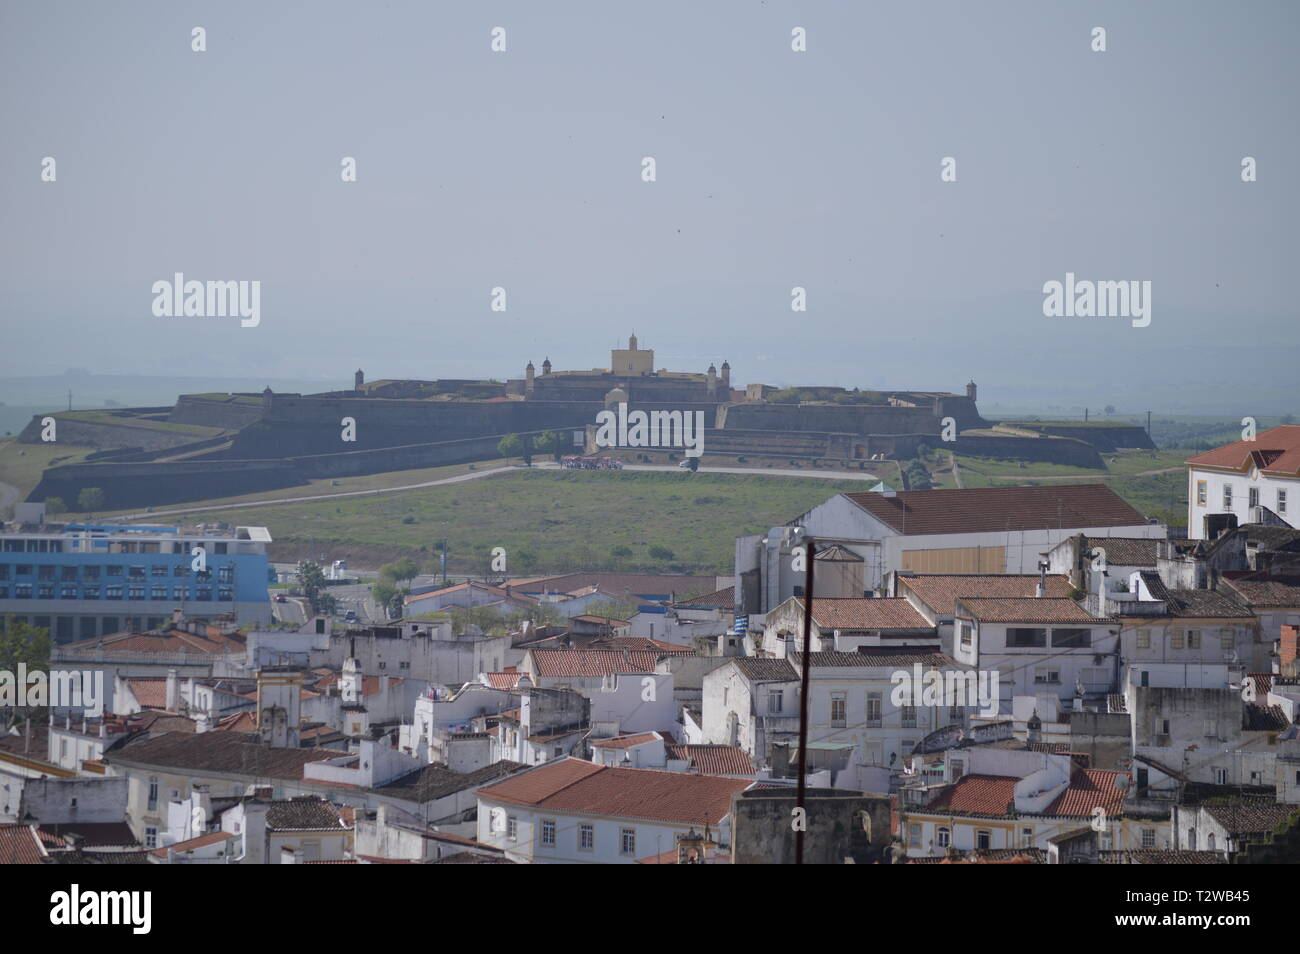 General Views of the Fort of Our Lady of Grace in Elvas. Nature, Architecture, History, Street Photography. April 11, 2014. Elvas, Portoalegre, Portug - Stock Image